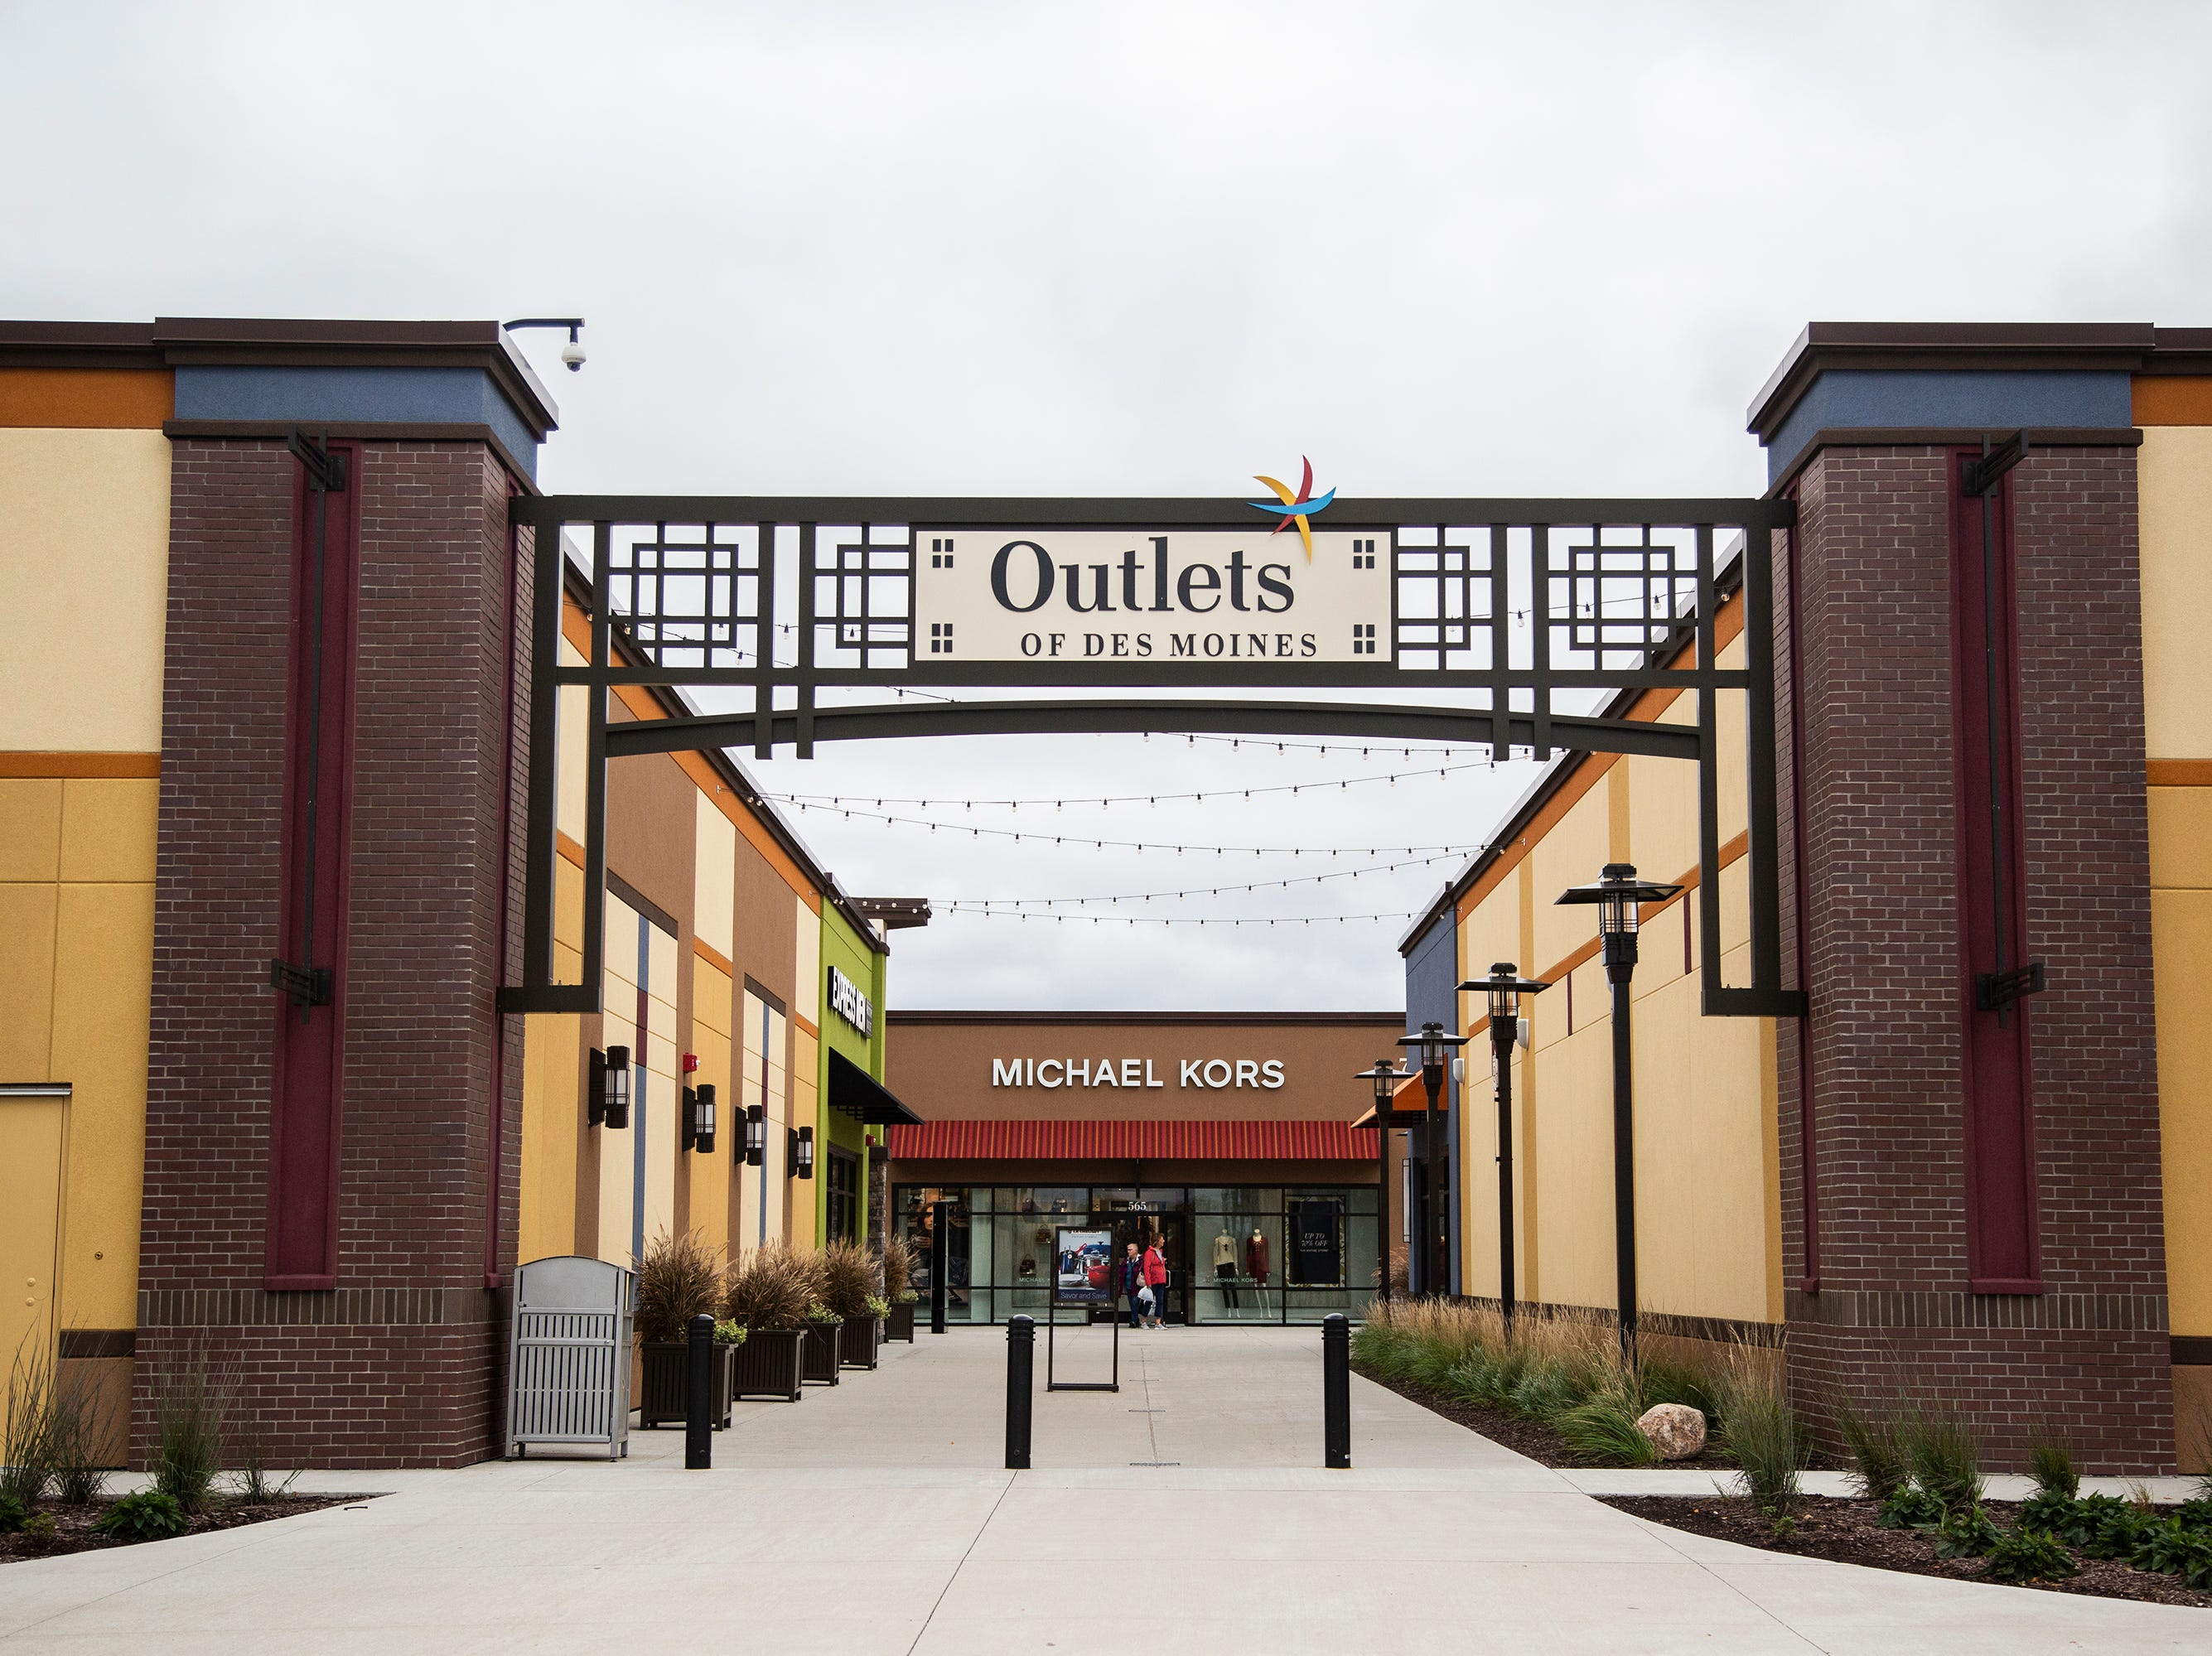 The Outlets of Des Moines is celebrating its one year anniversary this month, on Wednesday, Oct. 10, 2018, in Altoona. The mall has added new stores since it's opening, including Old Navy, Michael Kors, Lucky Brands, American Eagle and the newest addition, Polo Ralph Lauren. Forever 21 also is slated to open this fall.